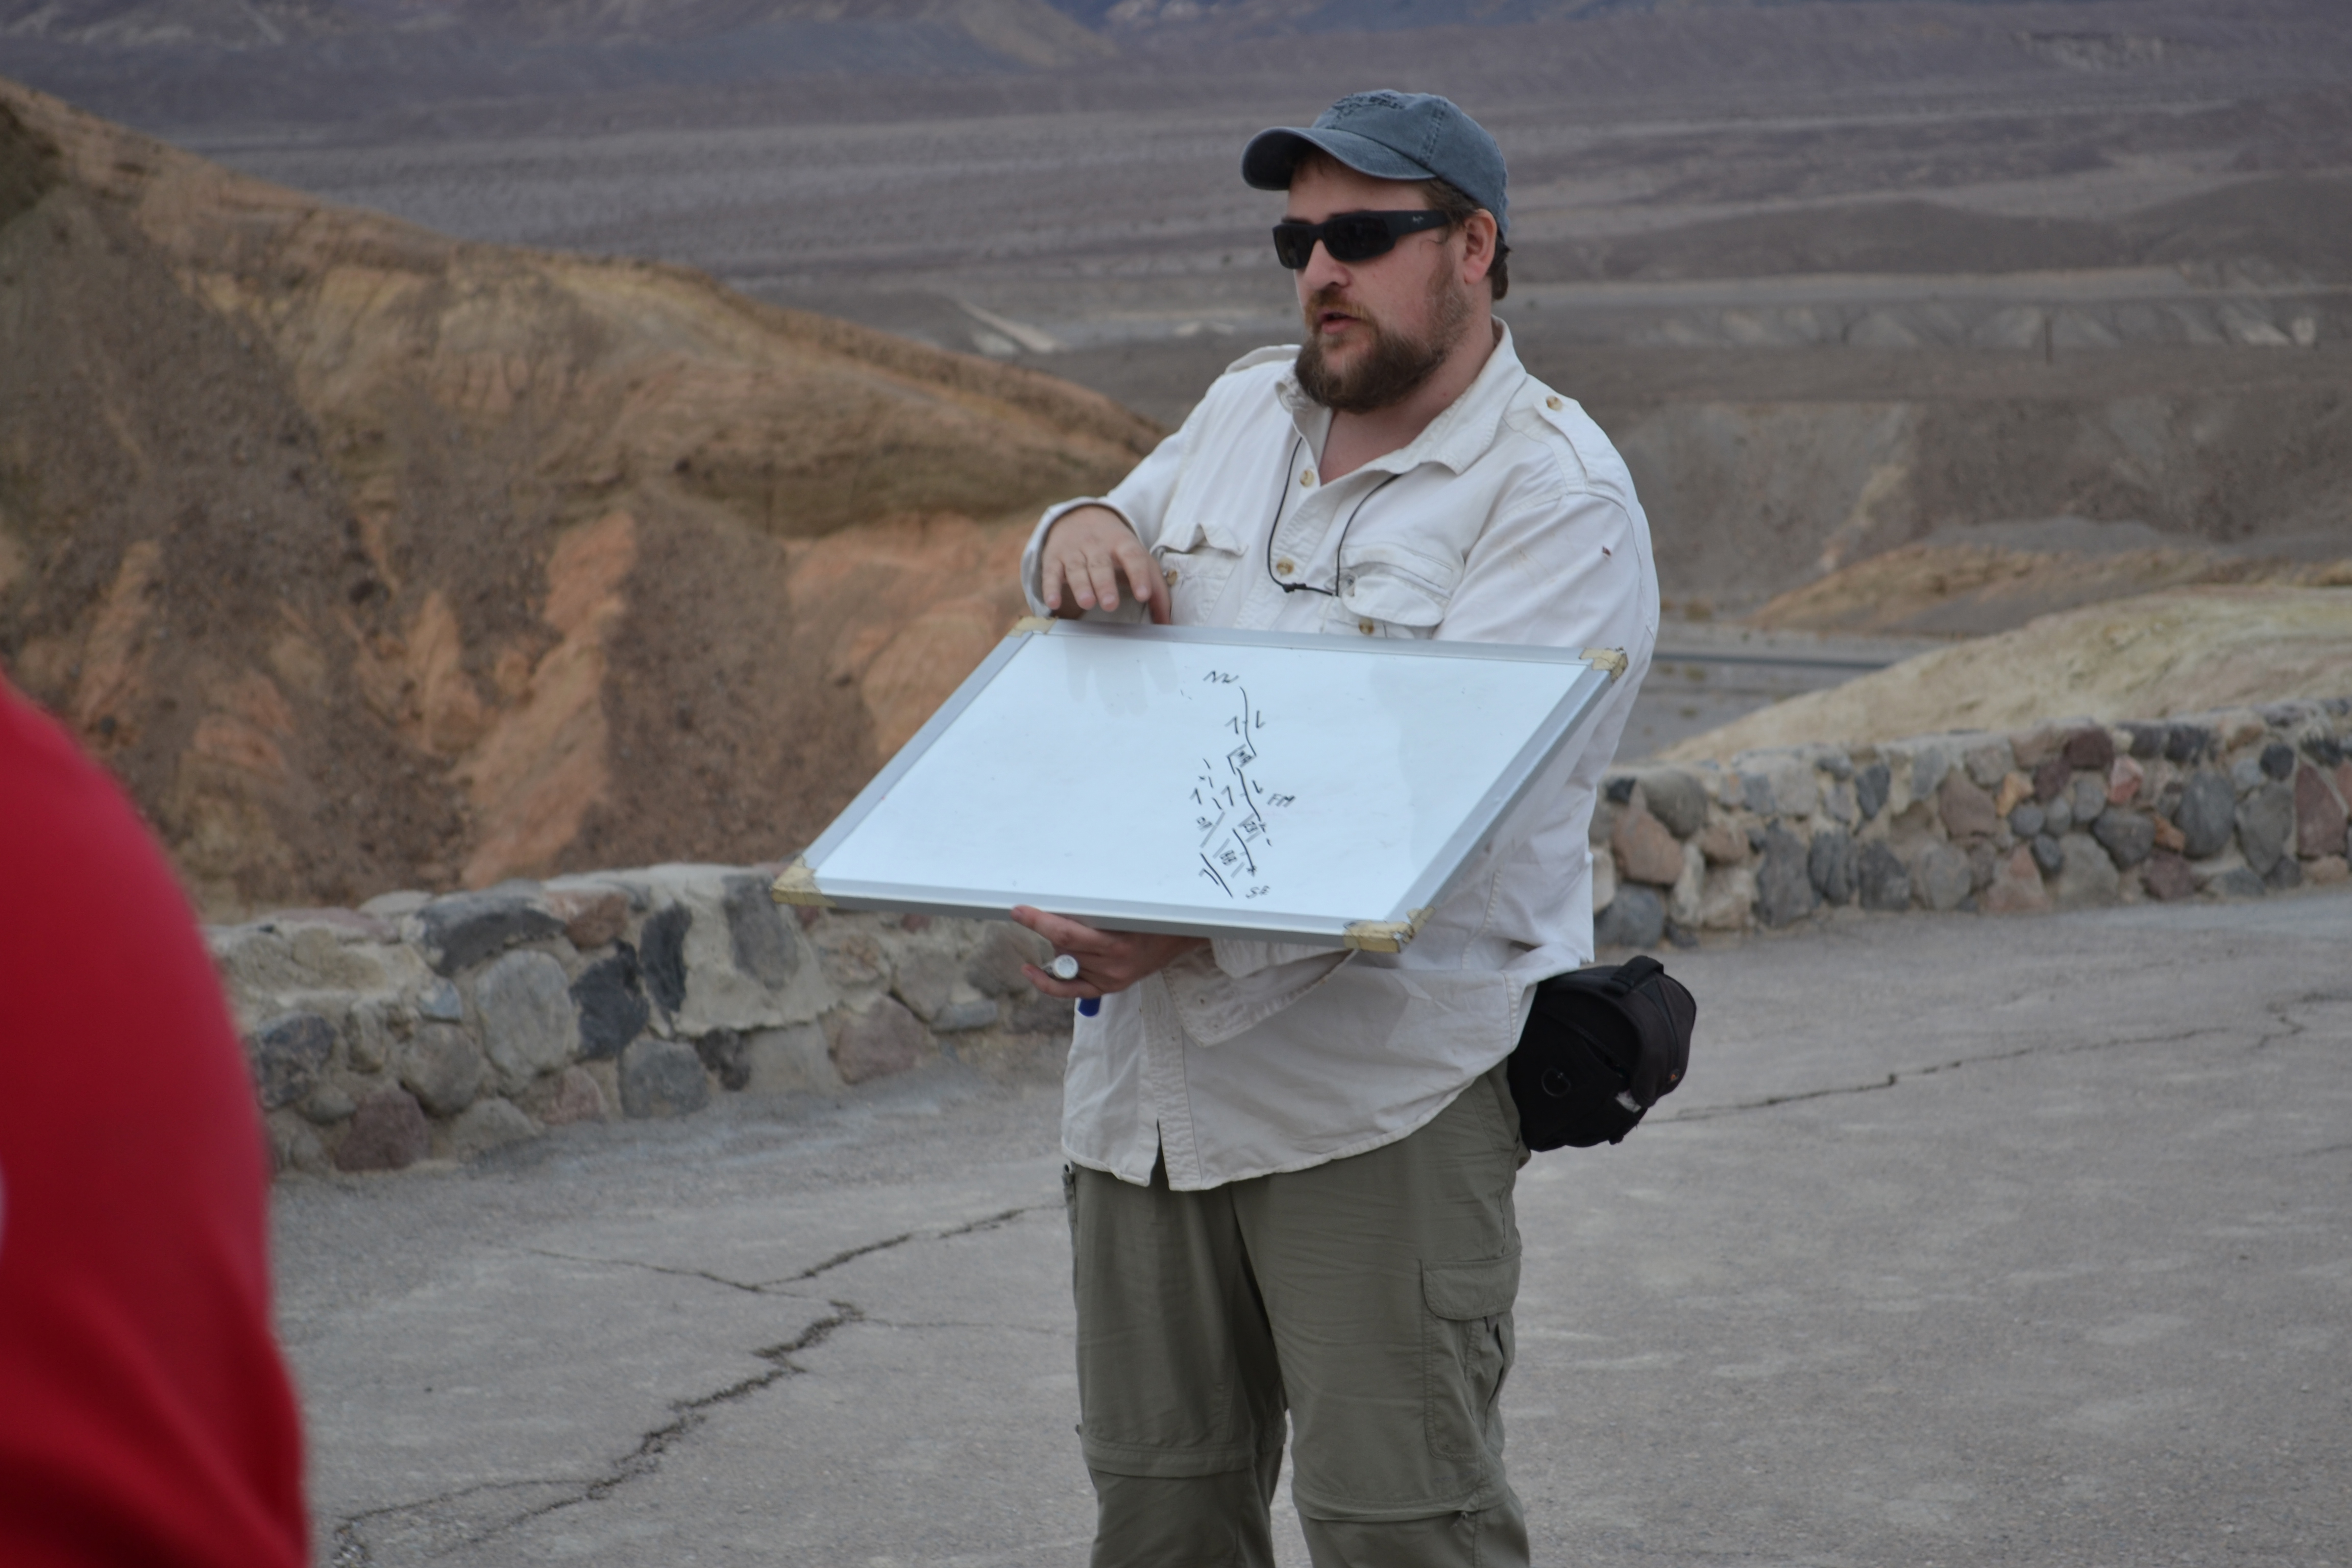 Photo of a man wearing a cap and sunglasses holding a chart